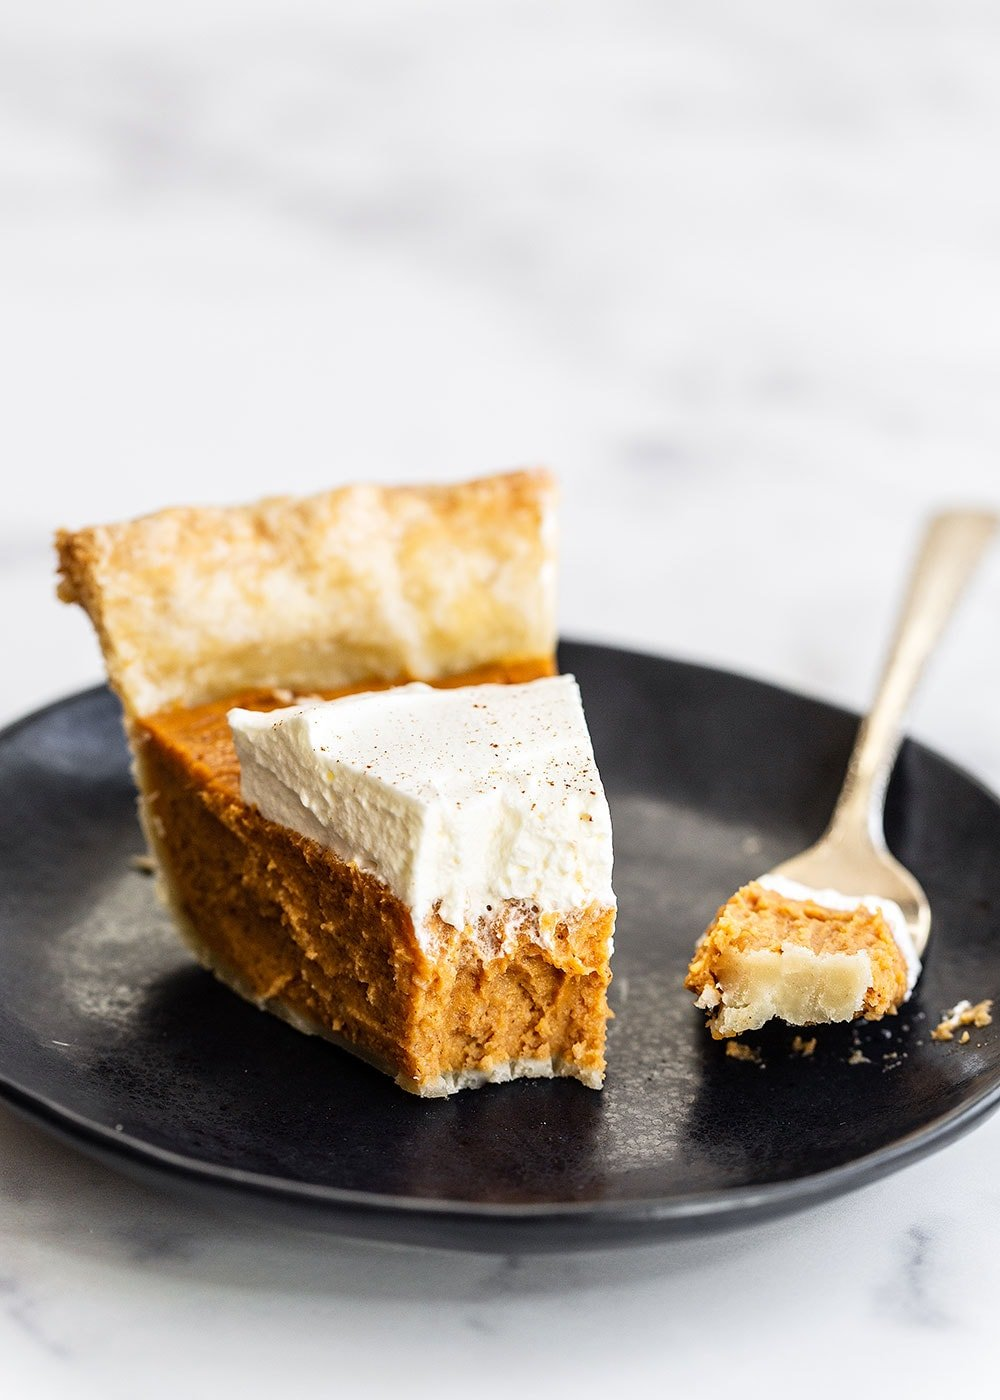 Slice of sweet potato pie with a bite taken out and whipped cream on top